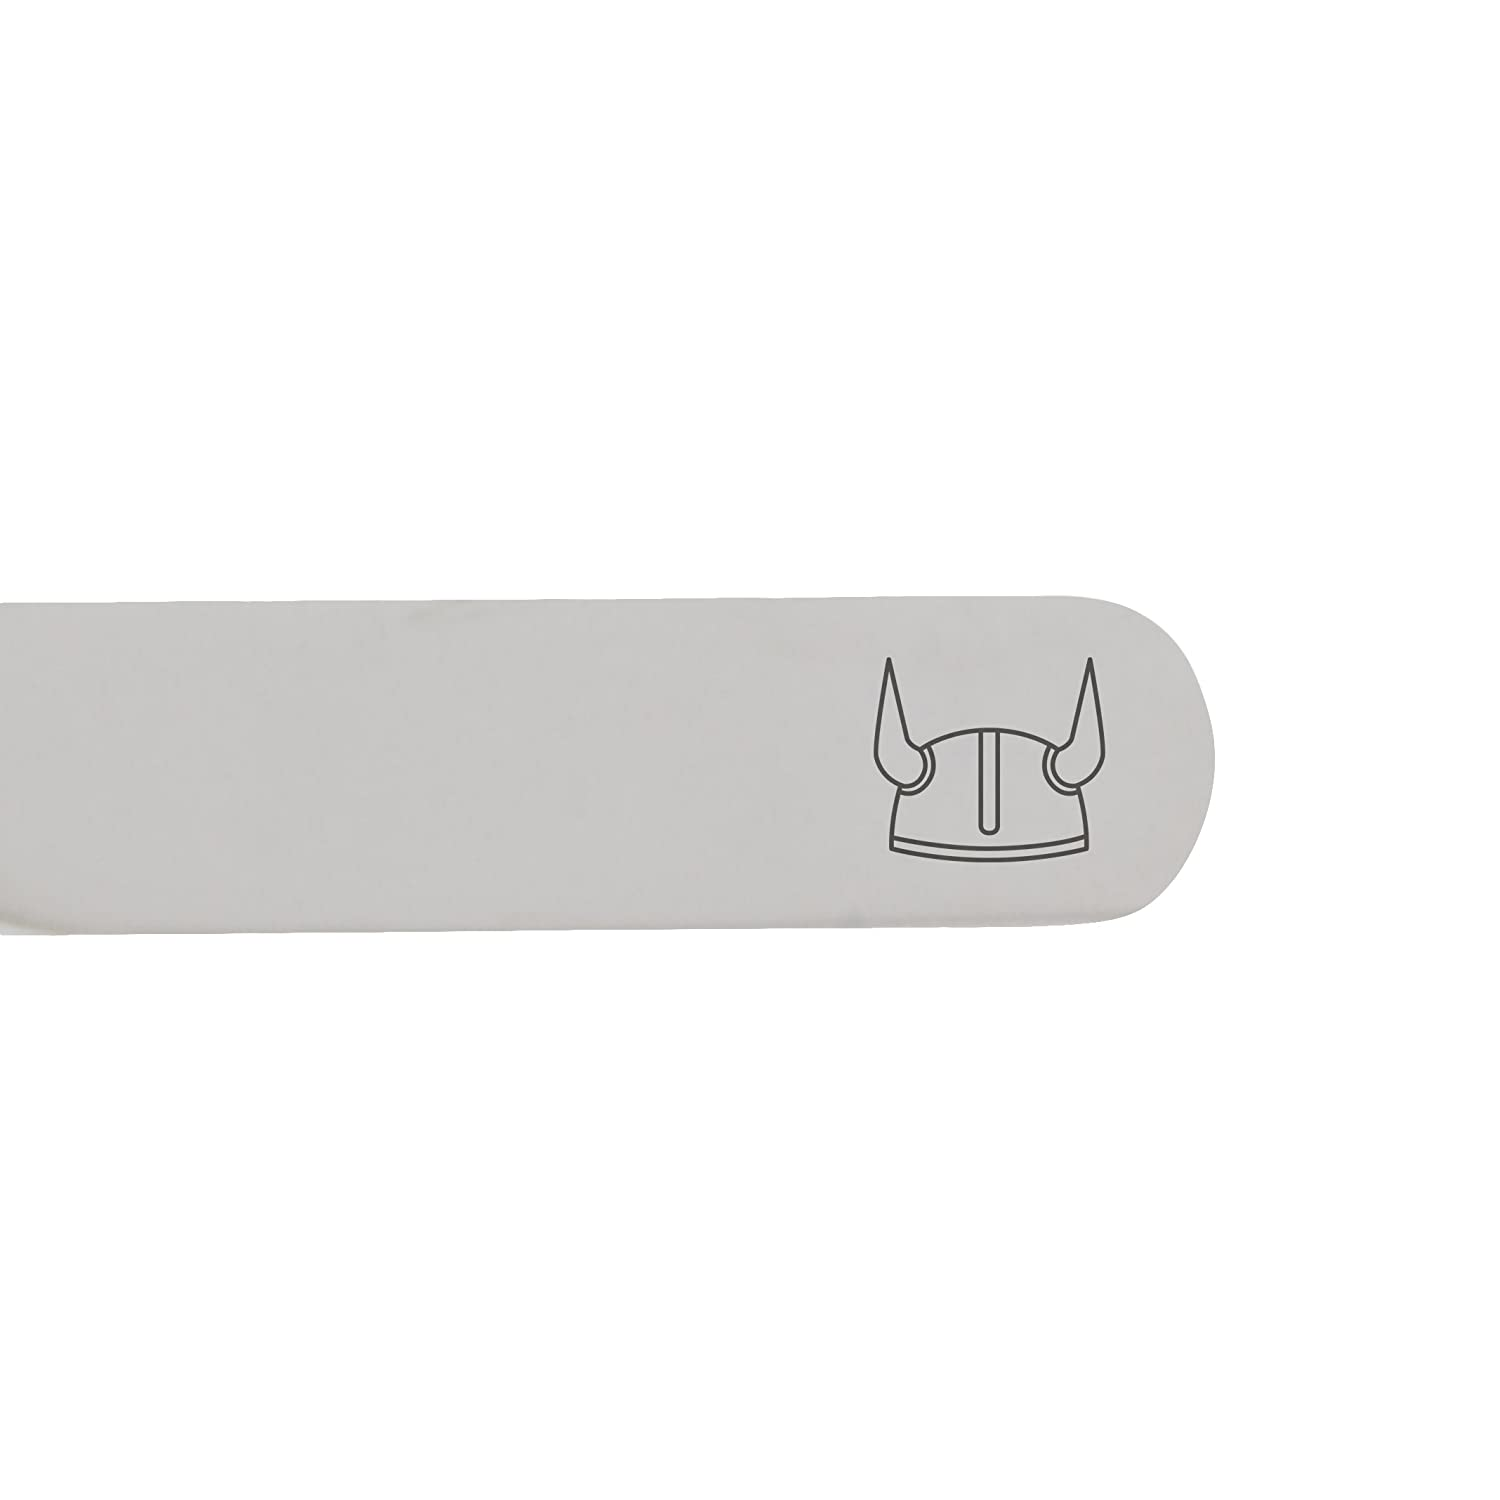 2.5 Inch Metal Collar Stiffeners MODERN GOODS SHOP Stainless Steel Collar Stays With Laser Engraved Viking Helmet Design Made In USA